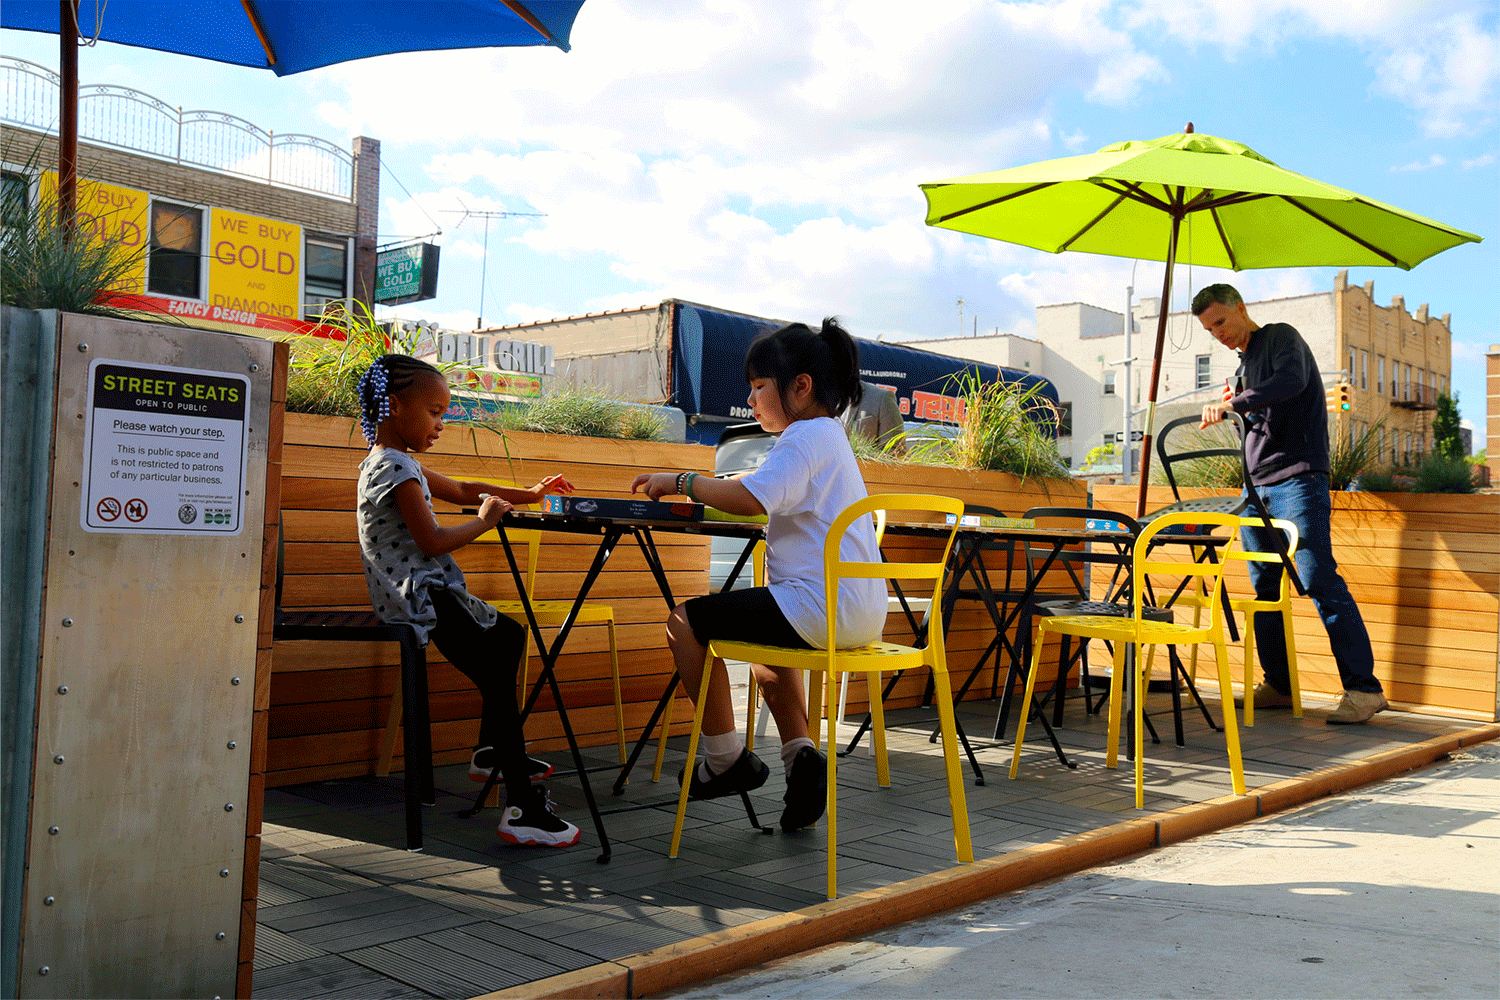 placemaking-strategy-street-seats-kids